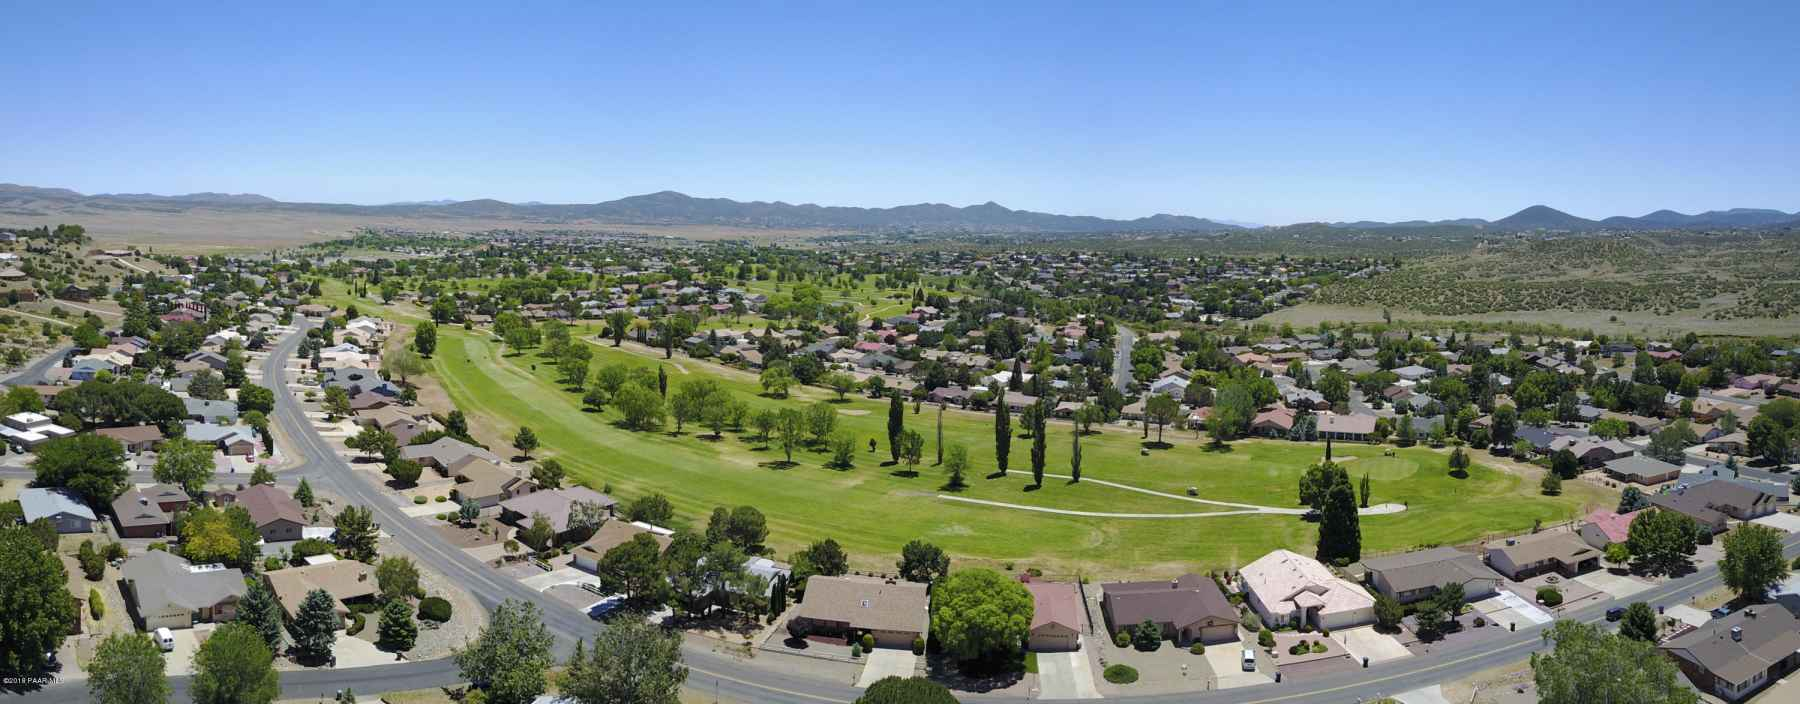 An Aerial Panoramic View-5